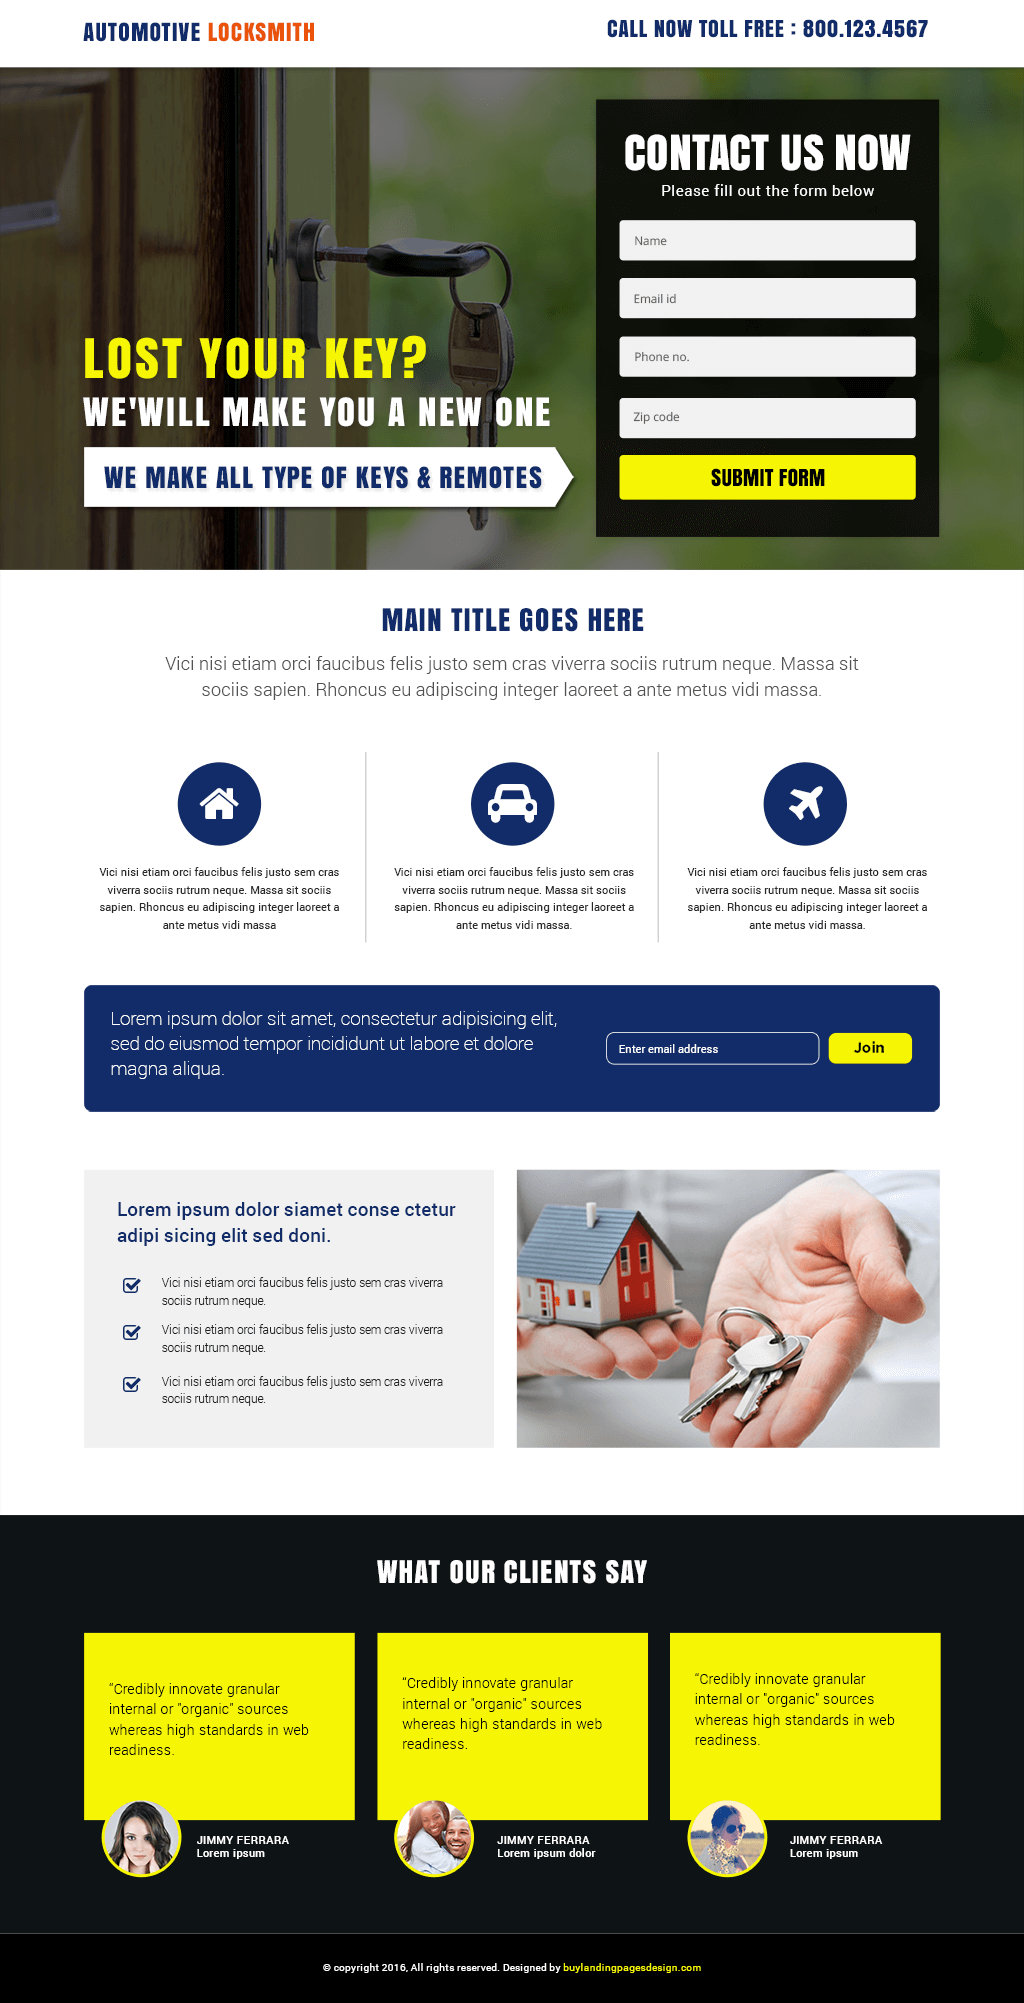 Automotive Locksmith Responsive Landing Page Template